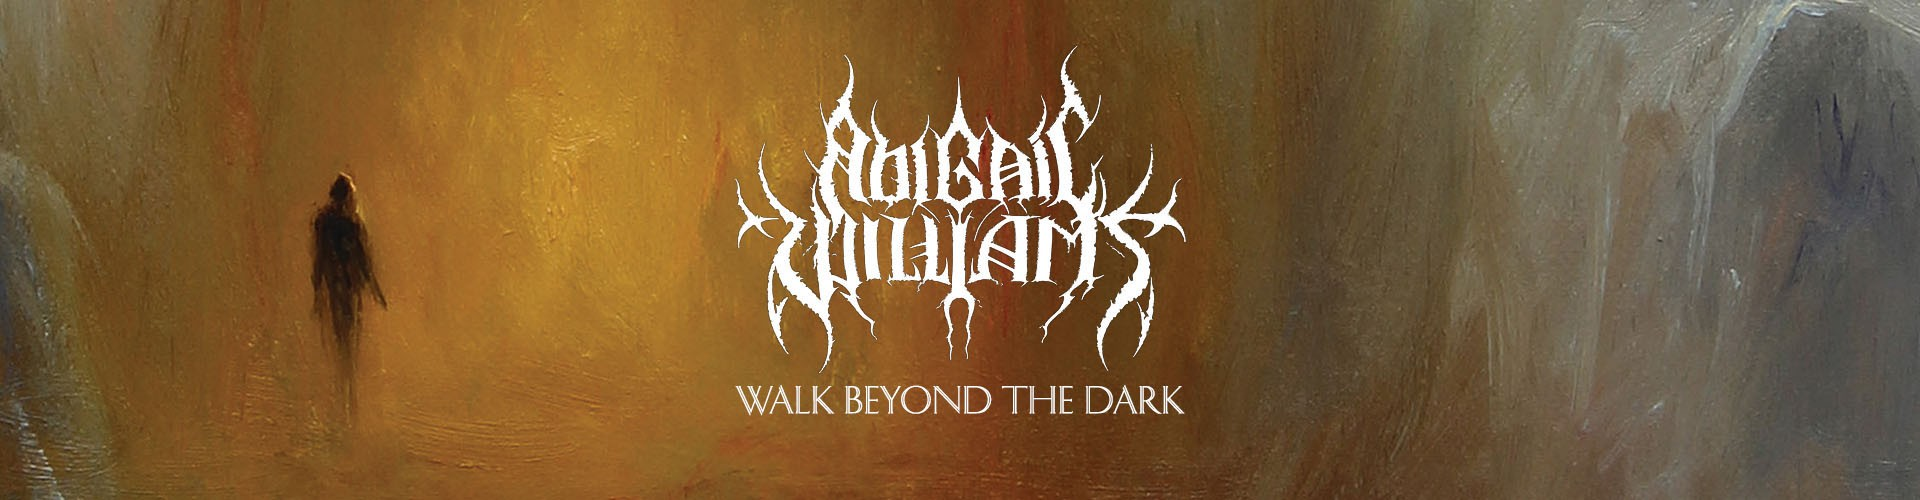 "Abigail Williams ""Walk Beyond the Dark"""